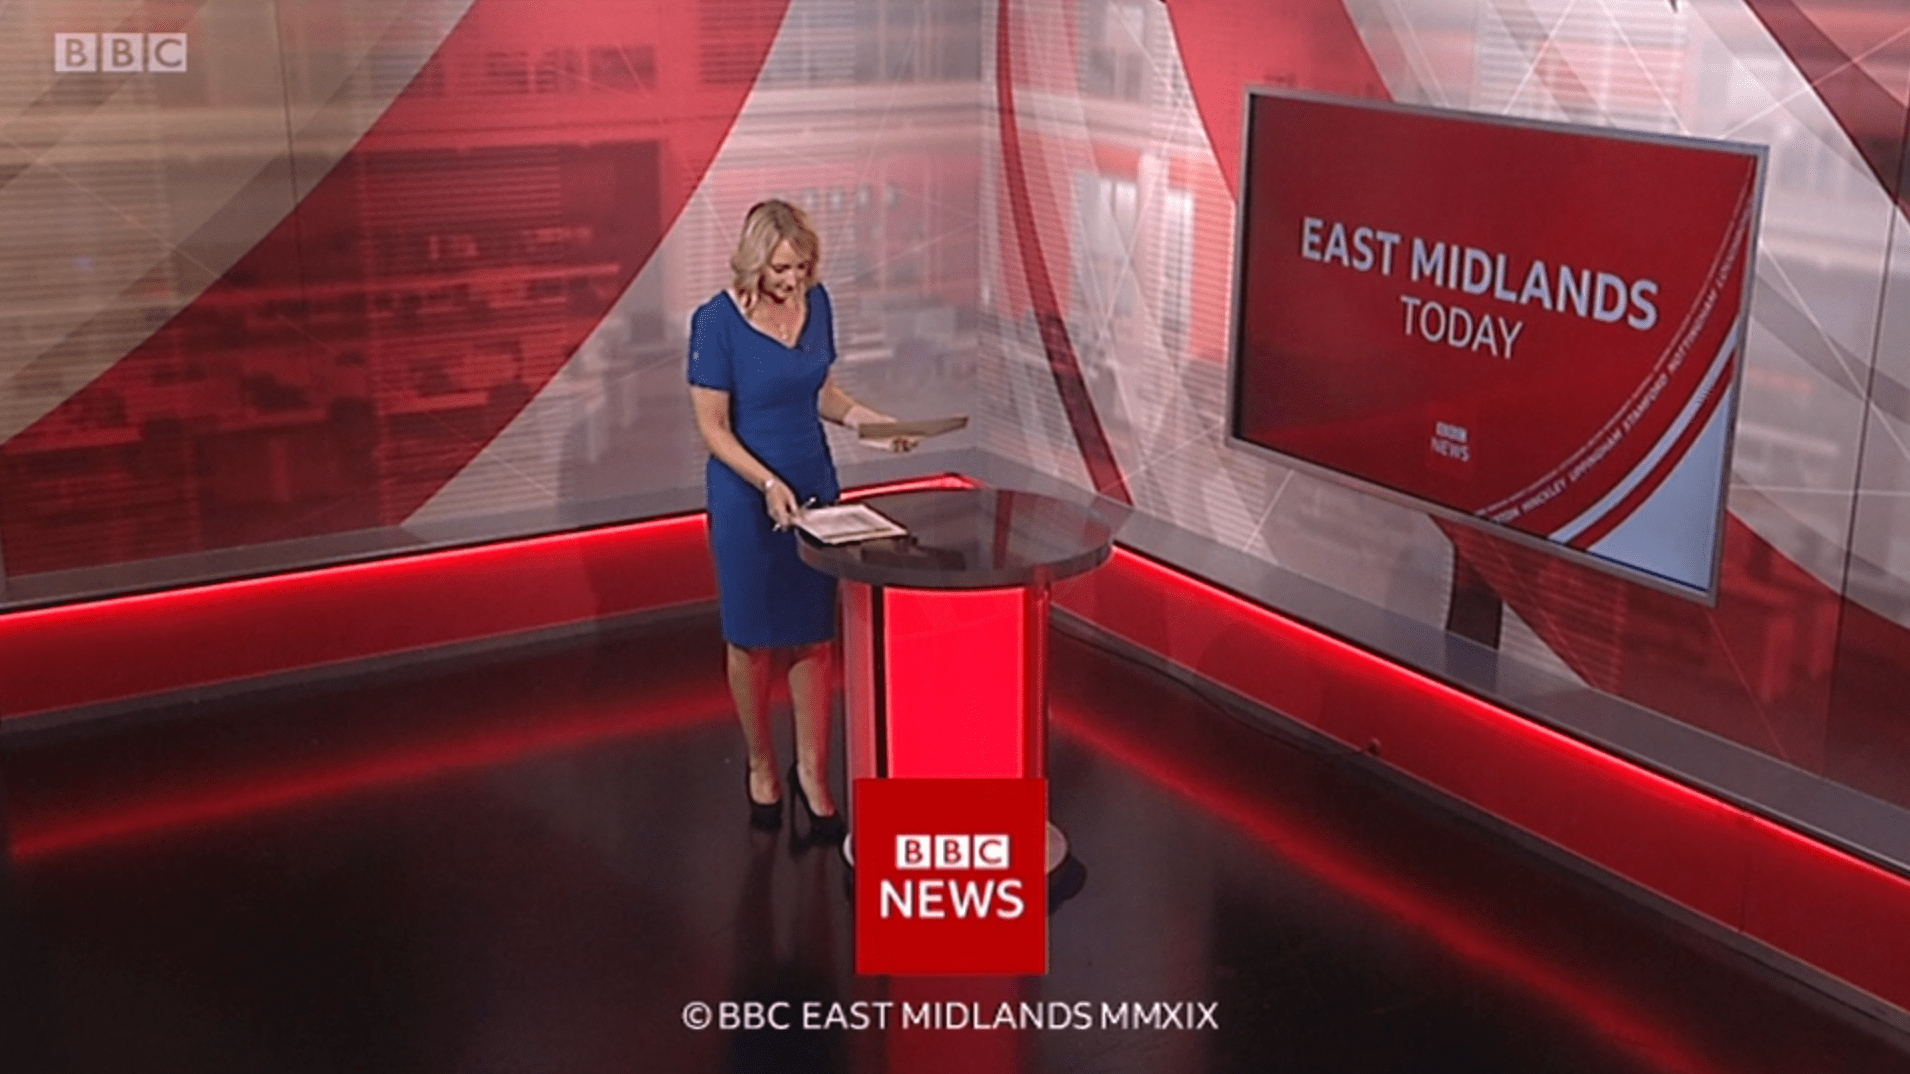 PICTURED: BBC East Midlands Today programme endboard.